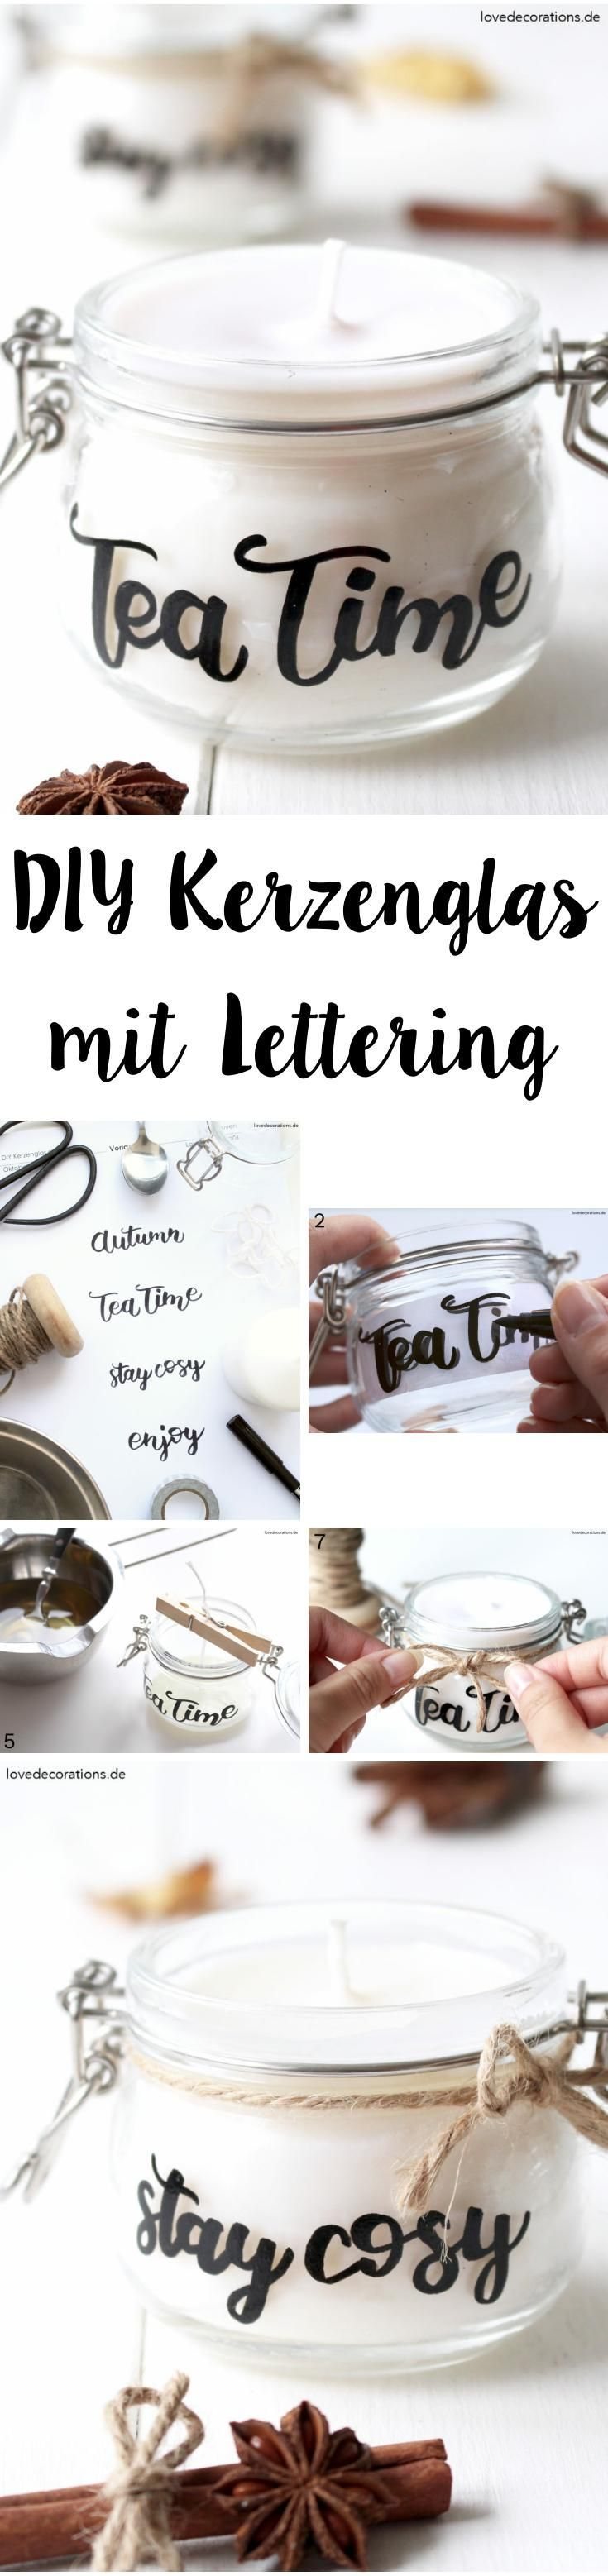 Ideas : DIY Candle Jar with Lettering | DIY Kerzenglas mit Lettering